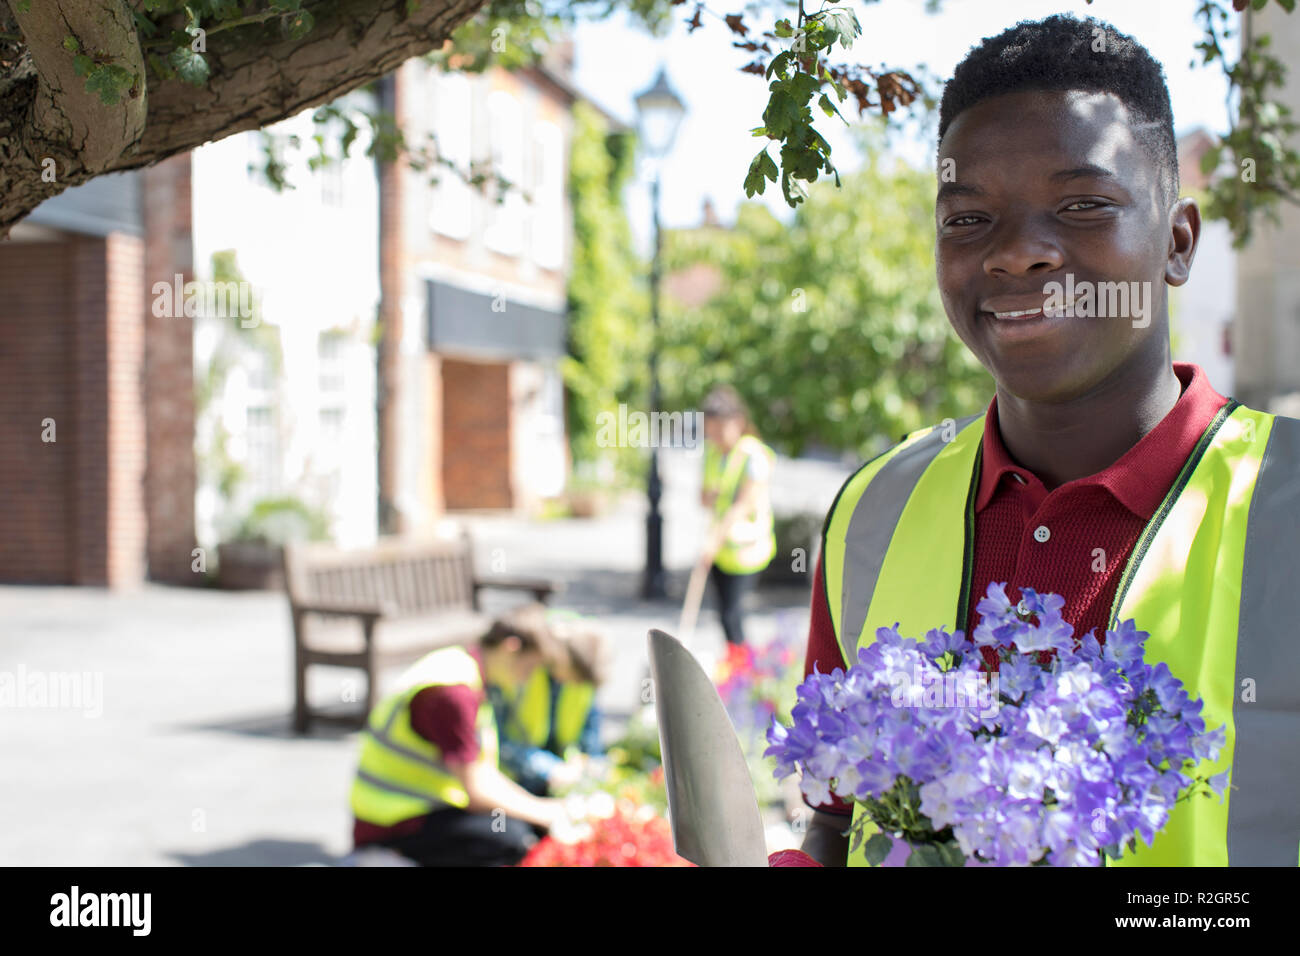 Group Of Helpful Teenagers Planting And Tidying Communal Flower Beds - Stock Image